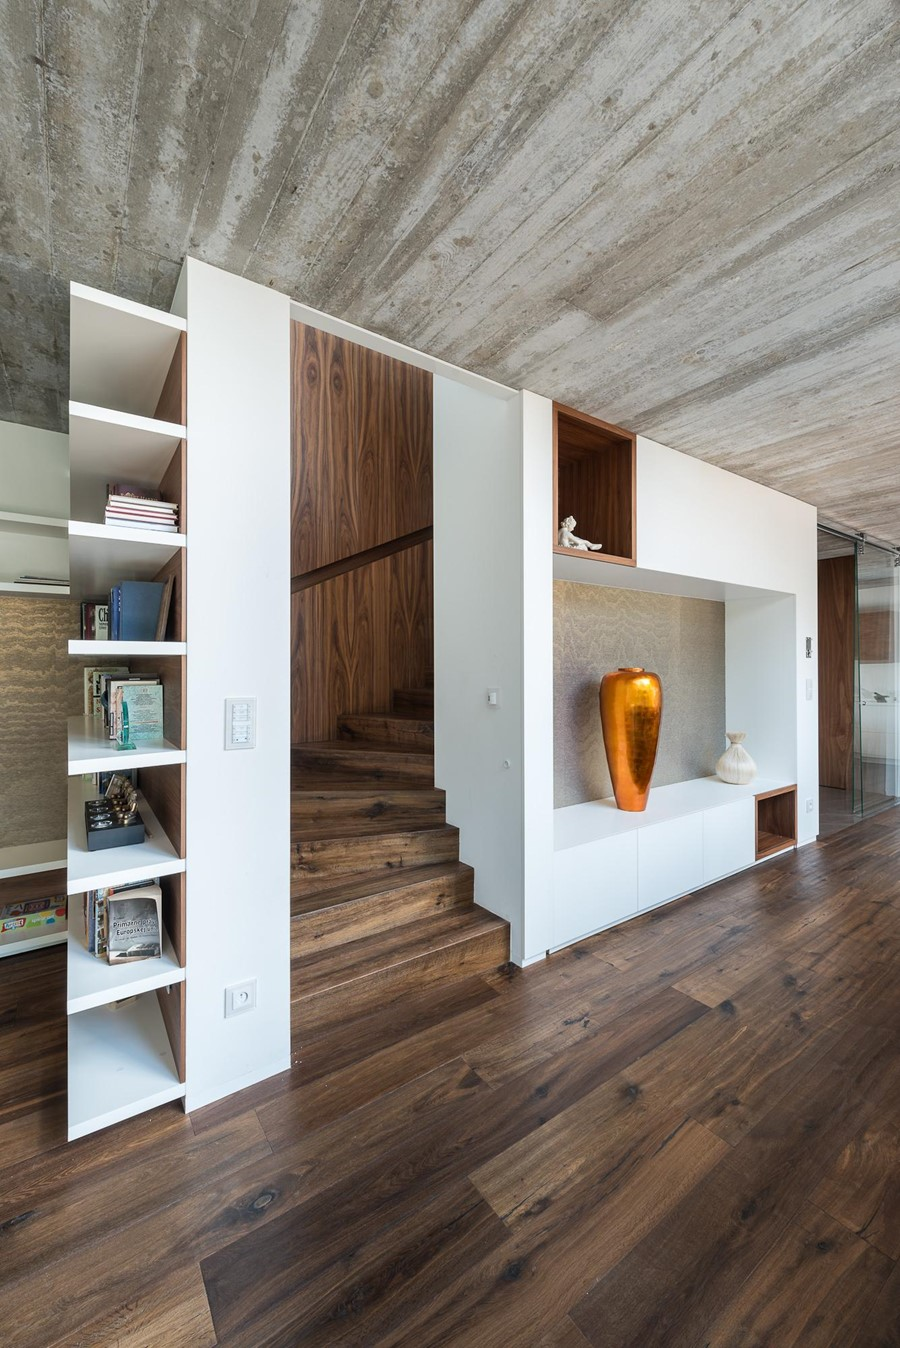 White Cubes House by at26 16